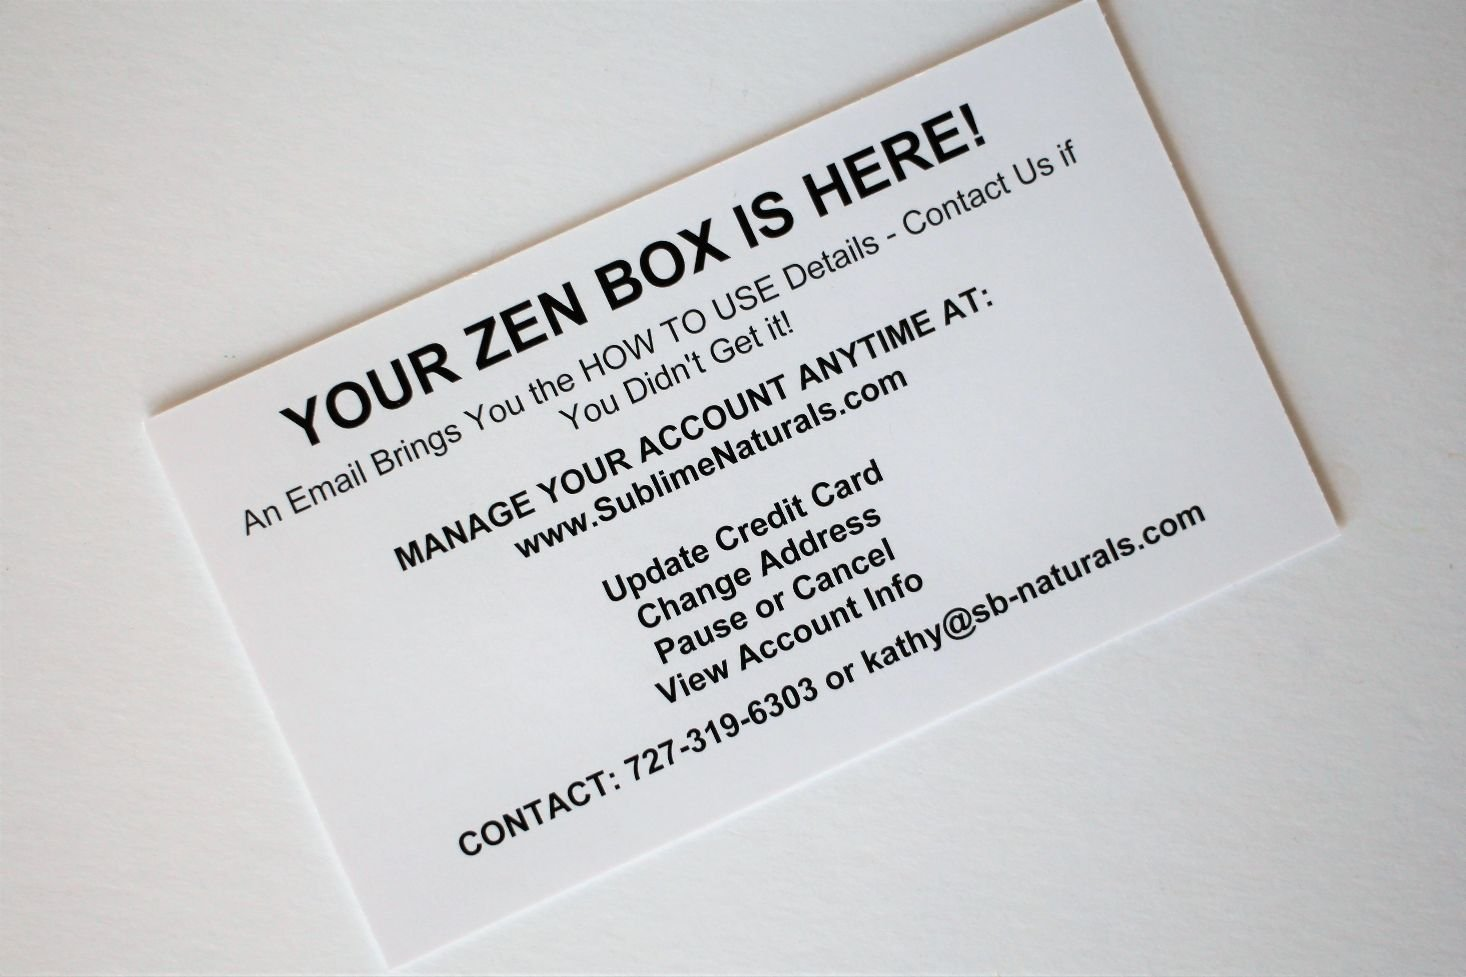 ZEN-BOX-APRIL-2017-06printed.jpg